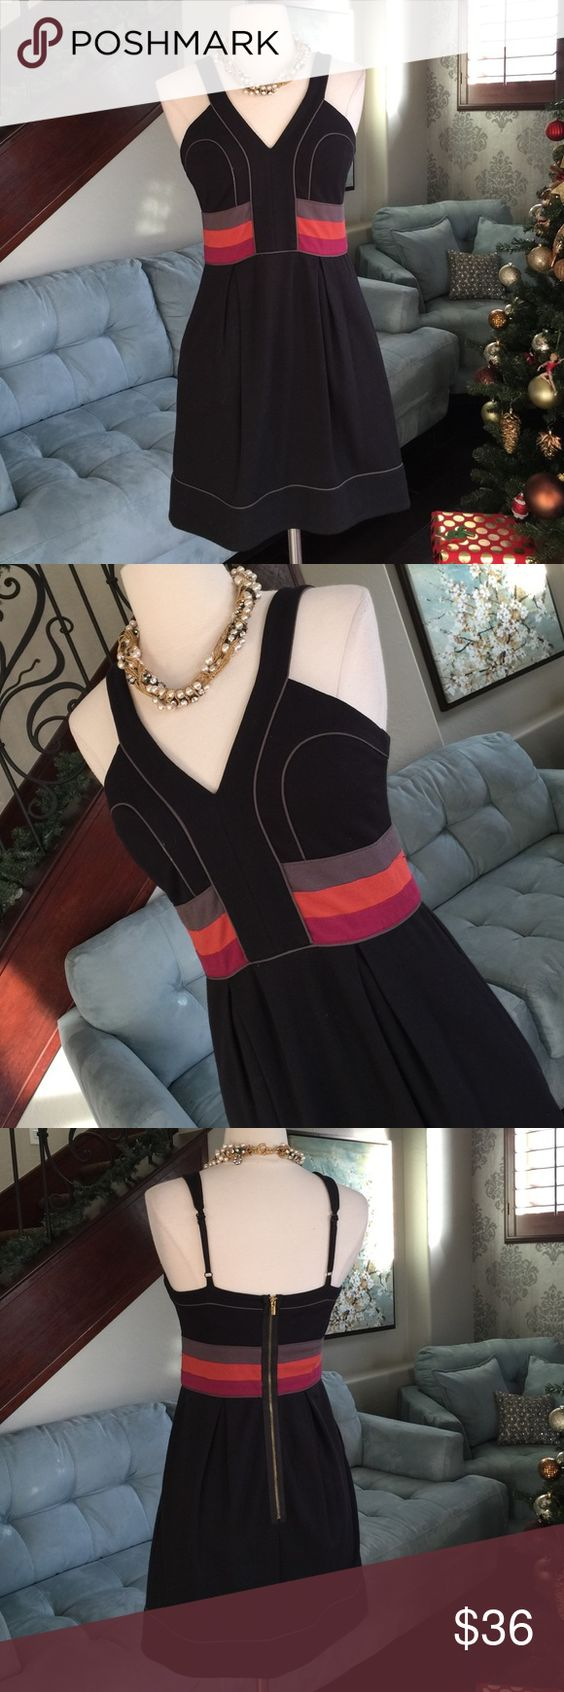 👗❤️️🌺BCBGMAXAZRIA adorable dress ♥️ Gorgeous style with back zipper multi color waist detail dress by BCBGMAXAZRIA so comfy and cute on perfect condition ♥️ BCBGMaxAzria Dresses